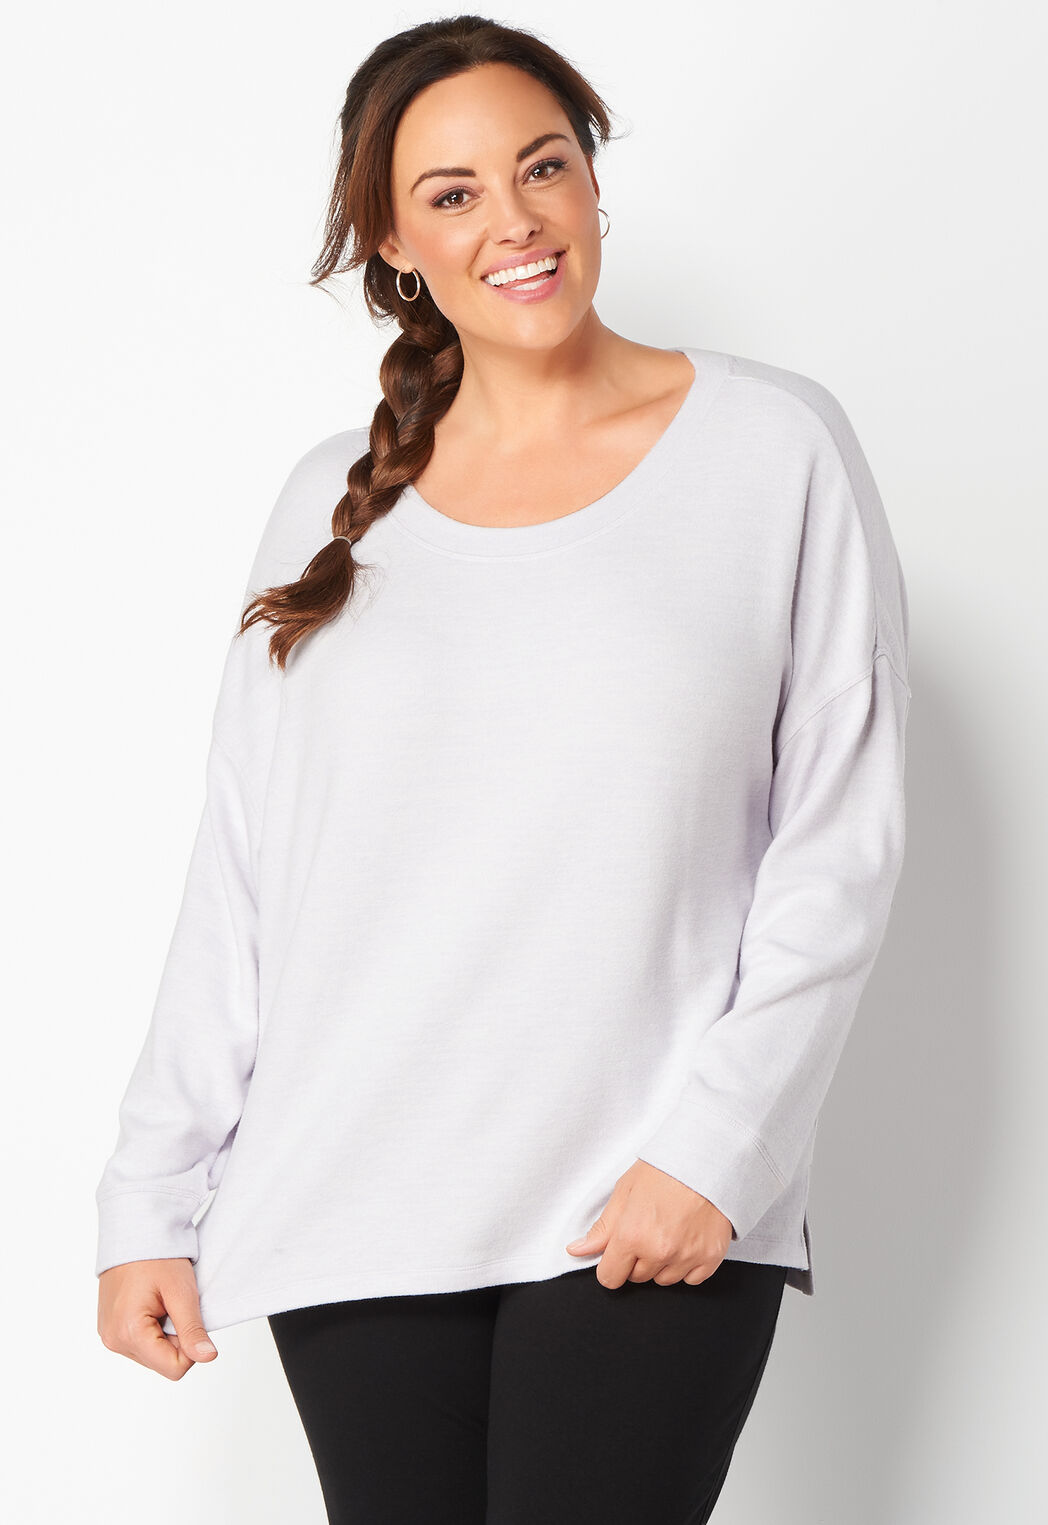 women's relaxed restyled drapey plus size top from christopher